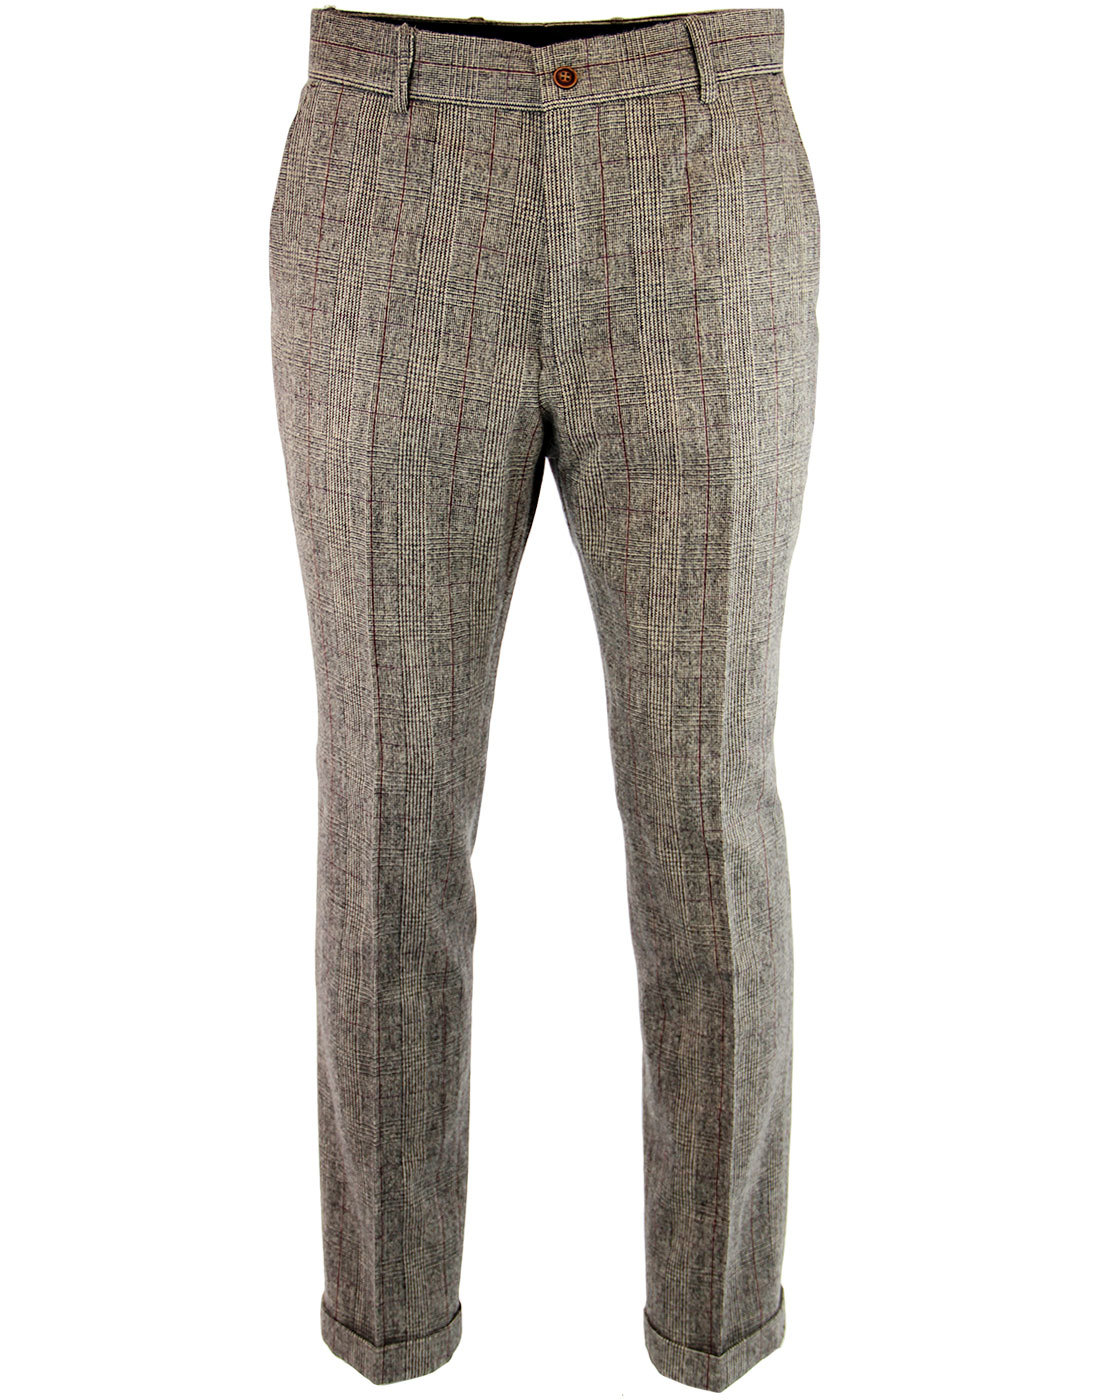 GIBSON LONDON 60s Mod POW Check Turn Up Trousers